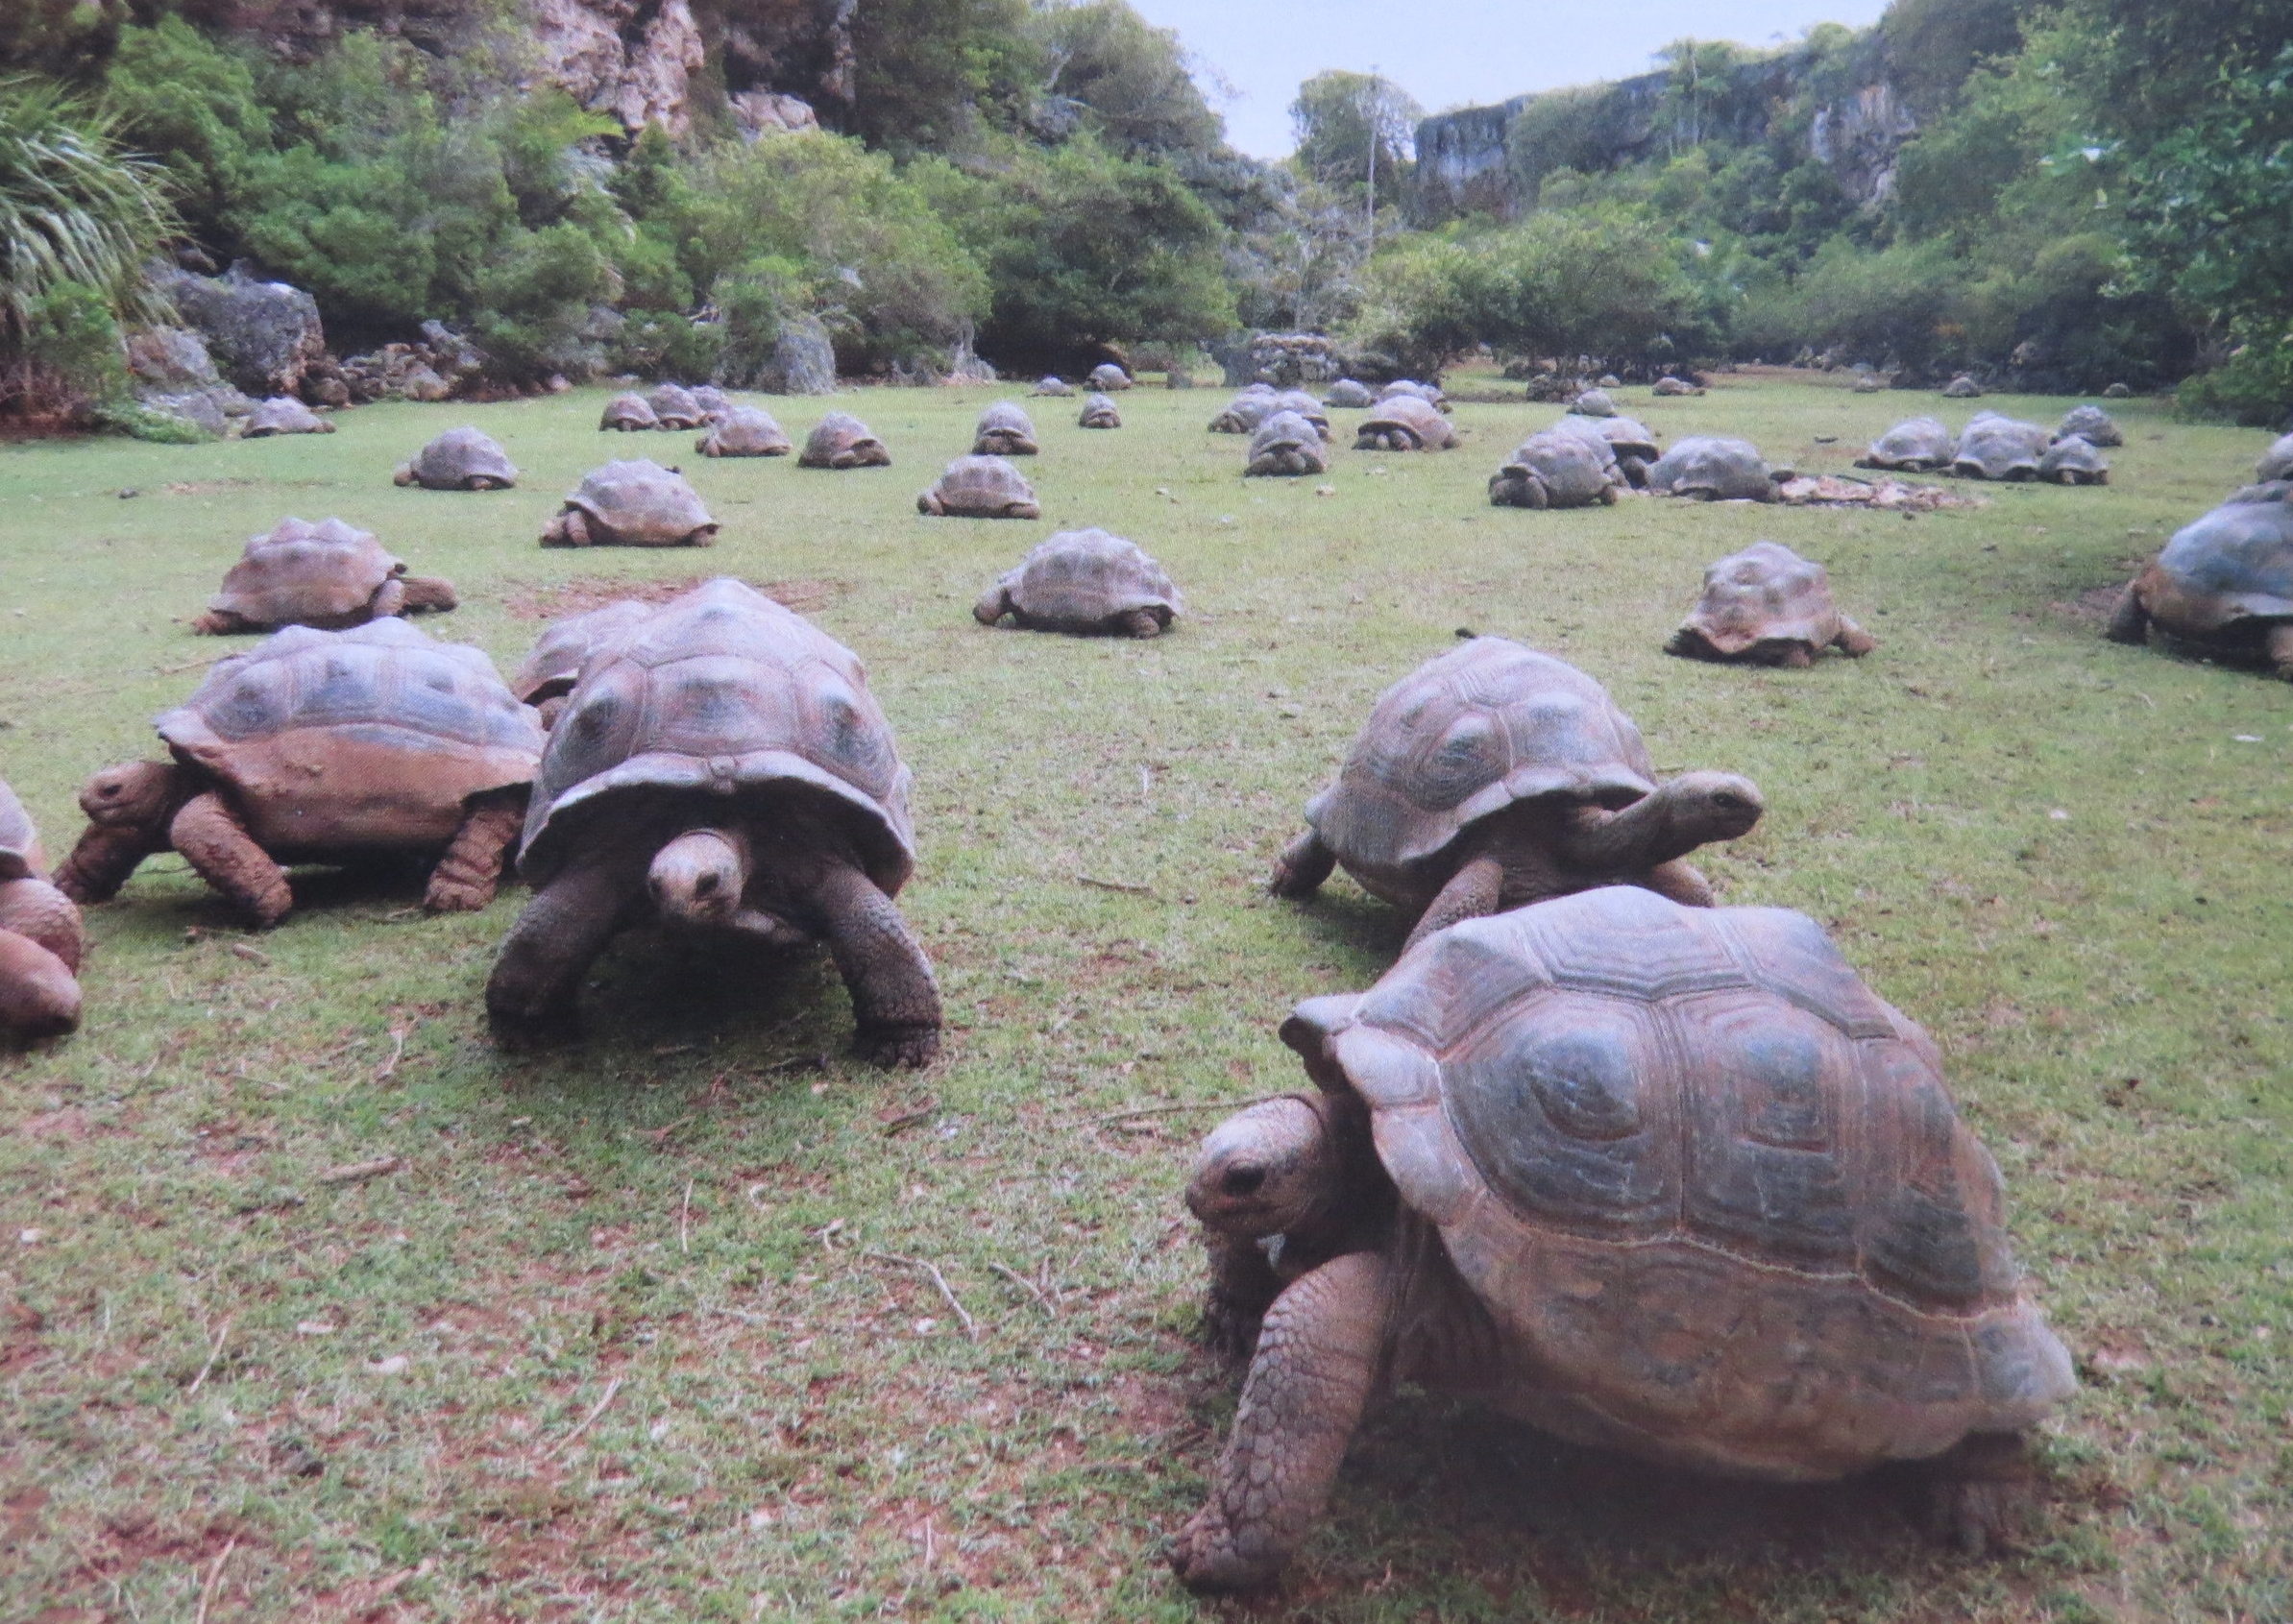 More tortoises than we've ever seen.